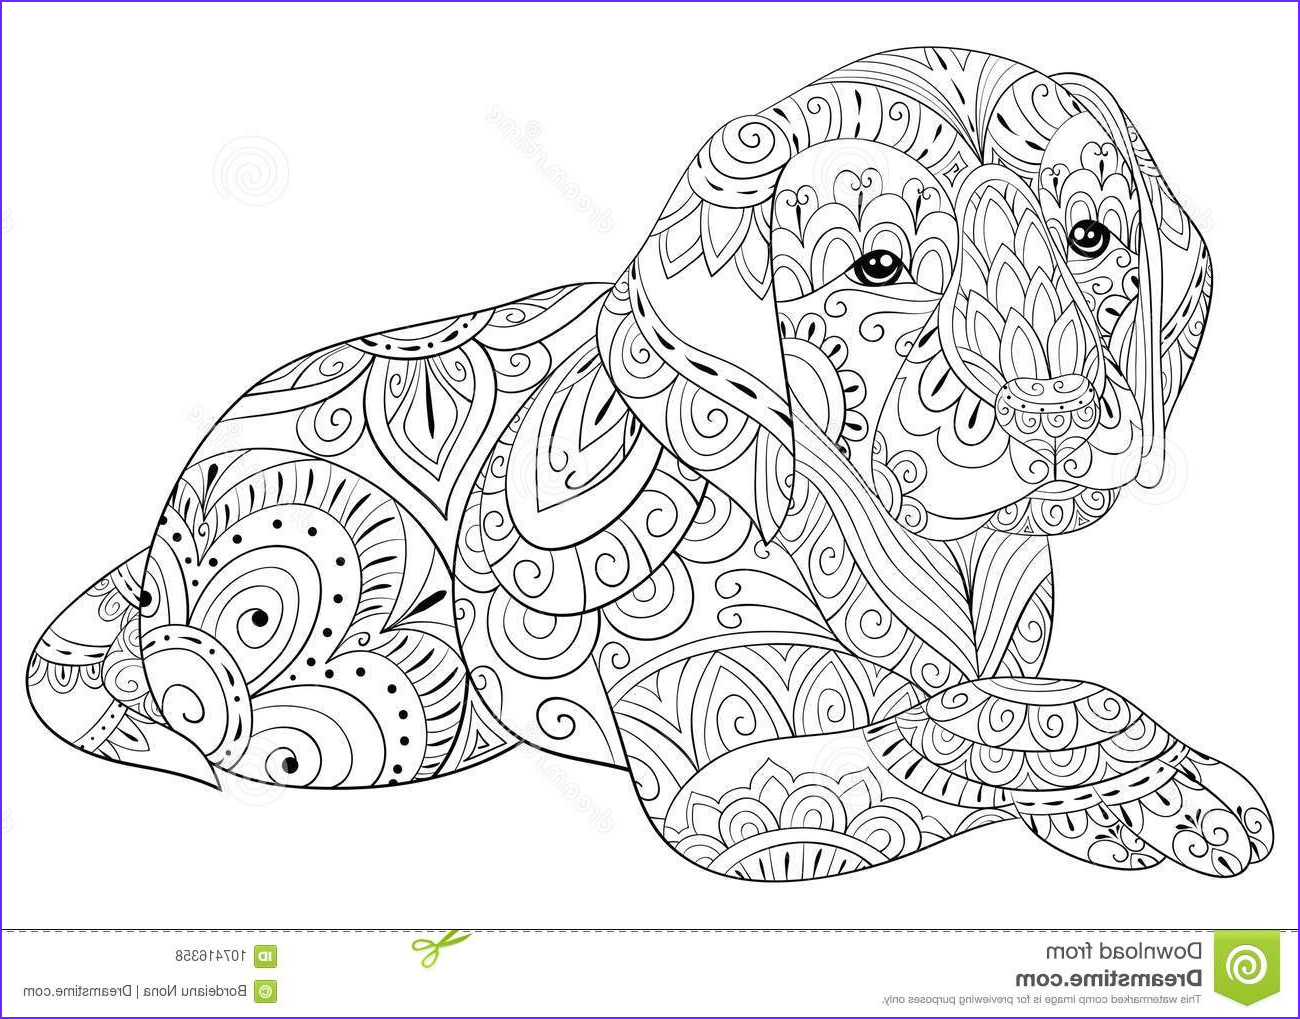 cute little dog coloring relaxing zen art style illustration poster wallpaper adult coloring page cute dog image